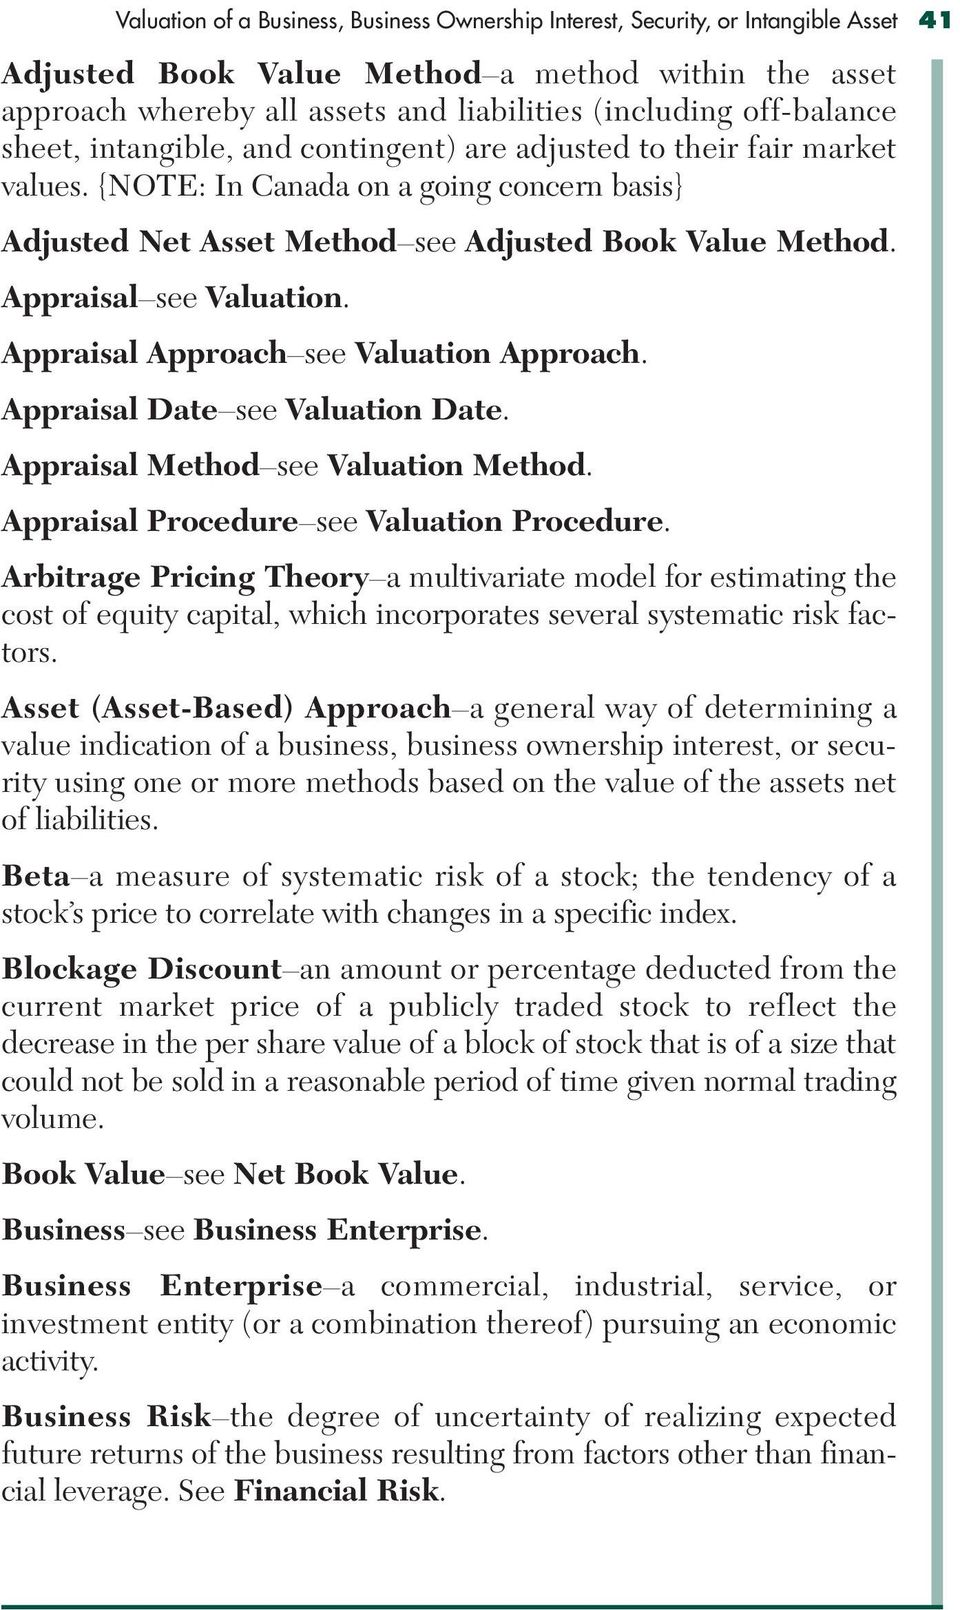 Appraisal see Valuation. Appraisal Approach see Valuation Approach. Appraisal Date see Valuation Date. Appraisal Method see Valuation Method. Appraisal Procedure see Valuation Procedure.